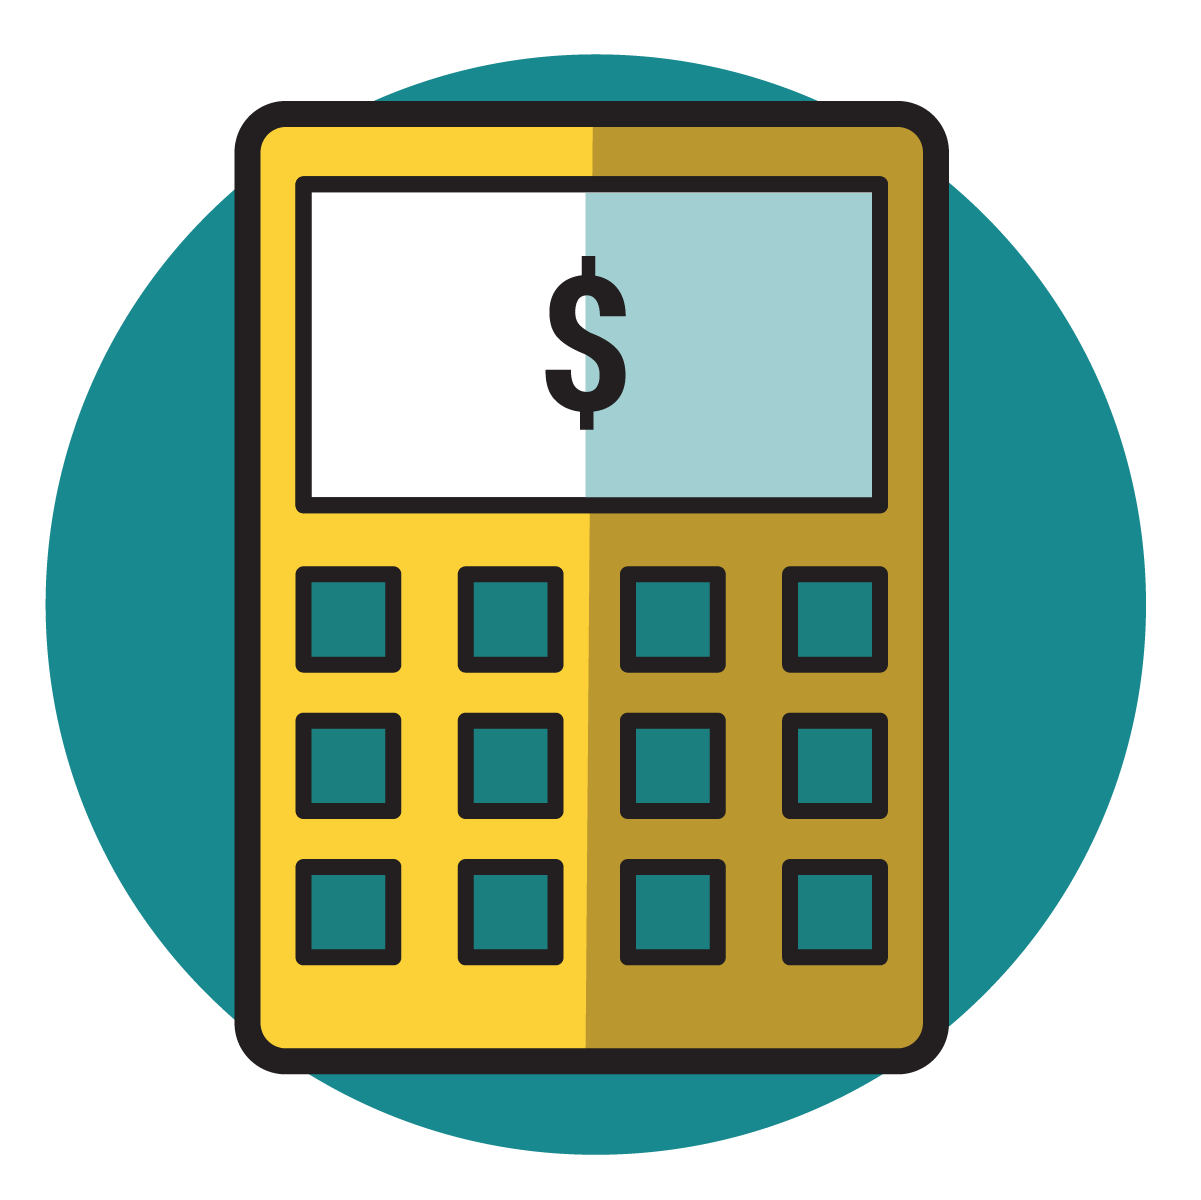 Library calculator